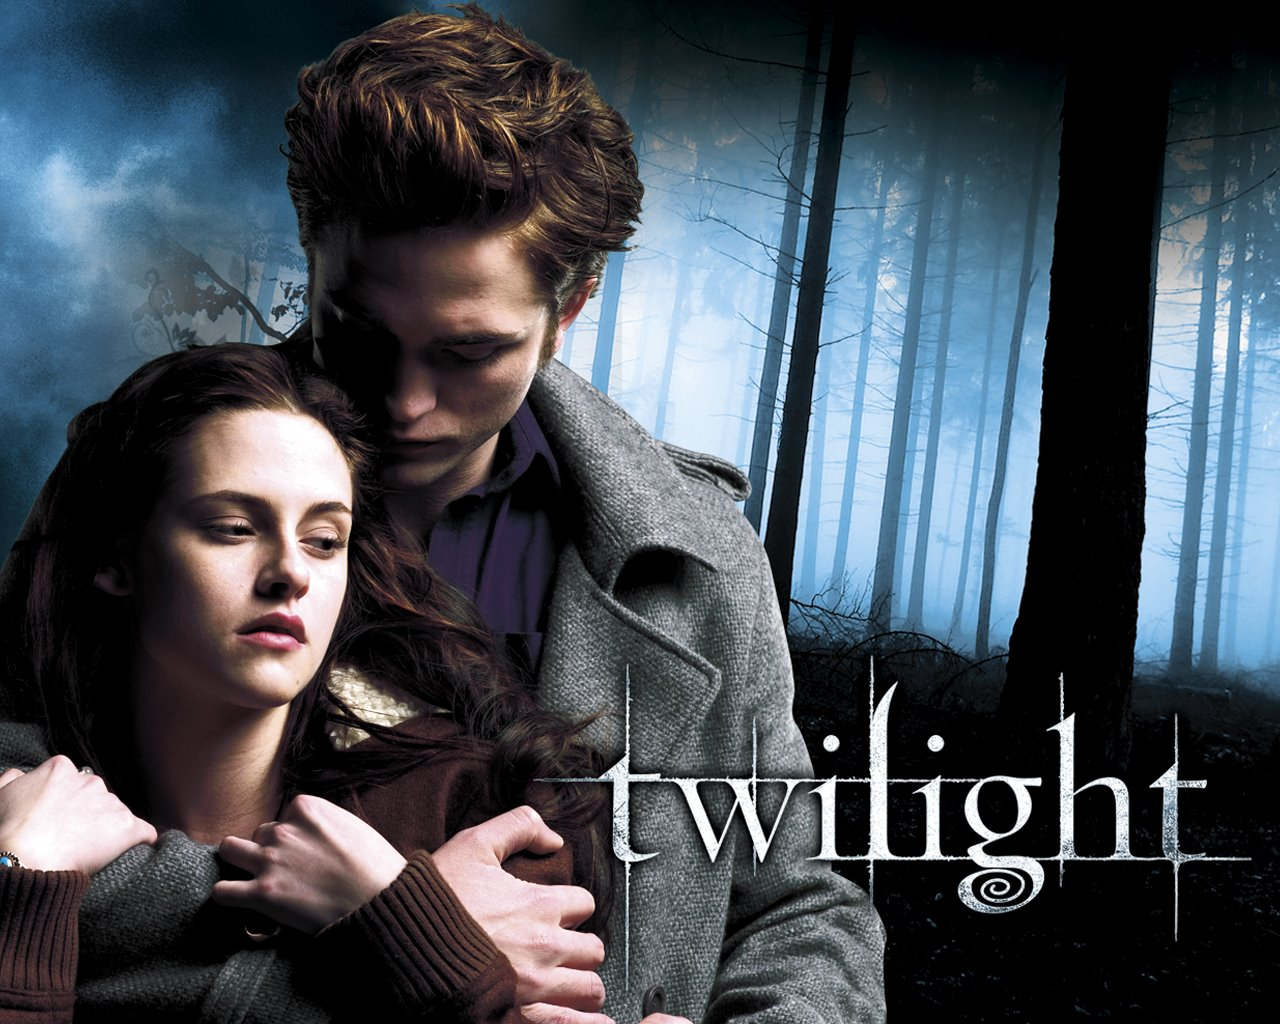 Twilight free download Twilight edward photos